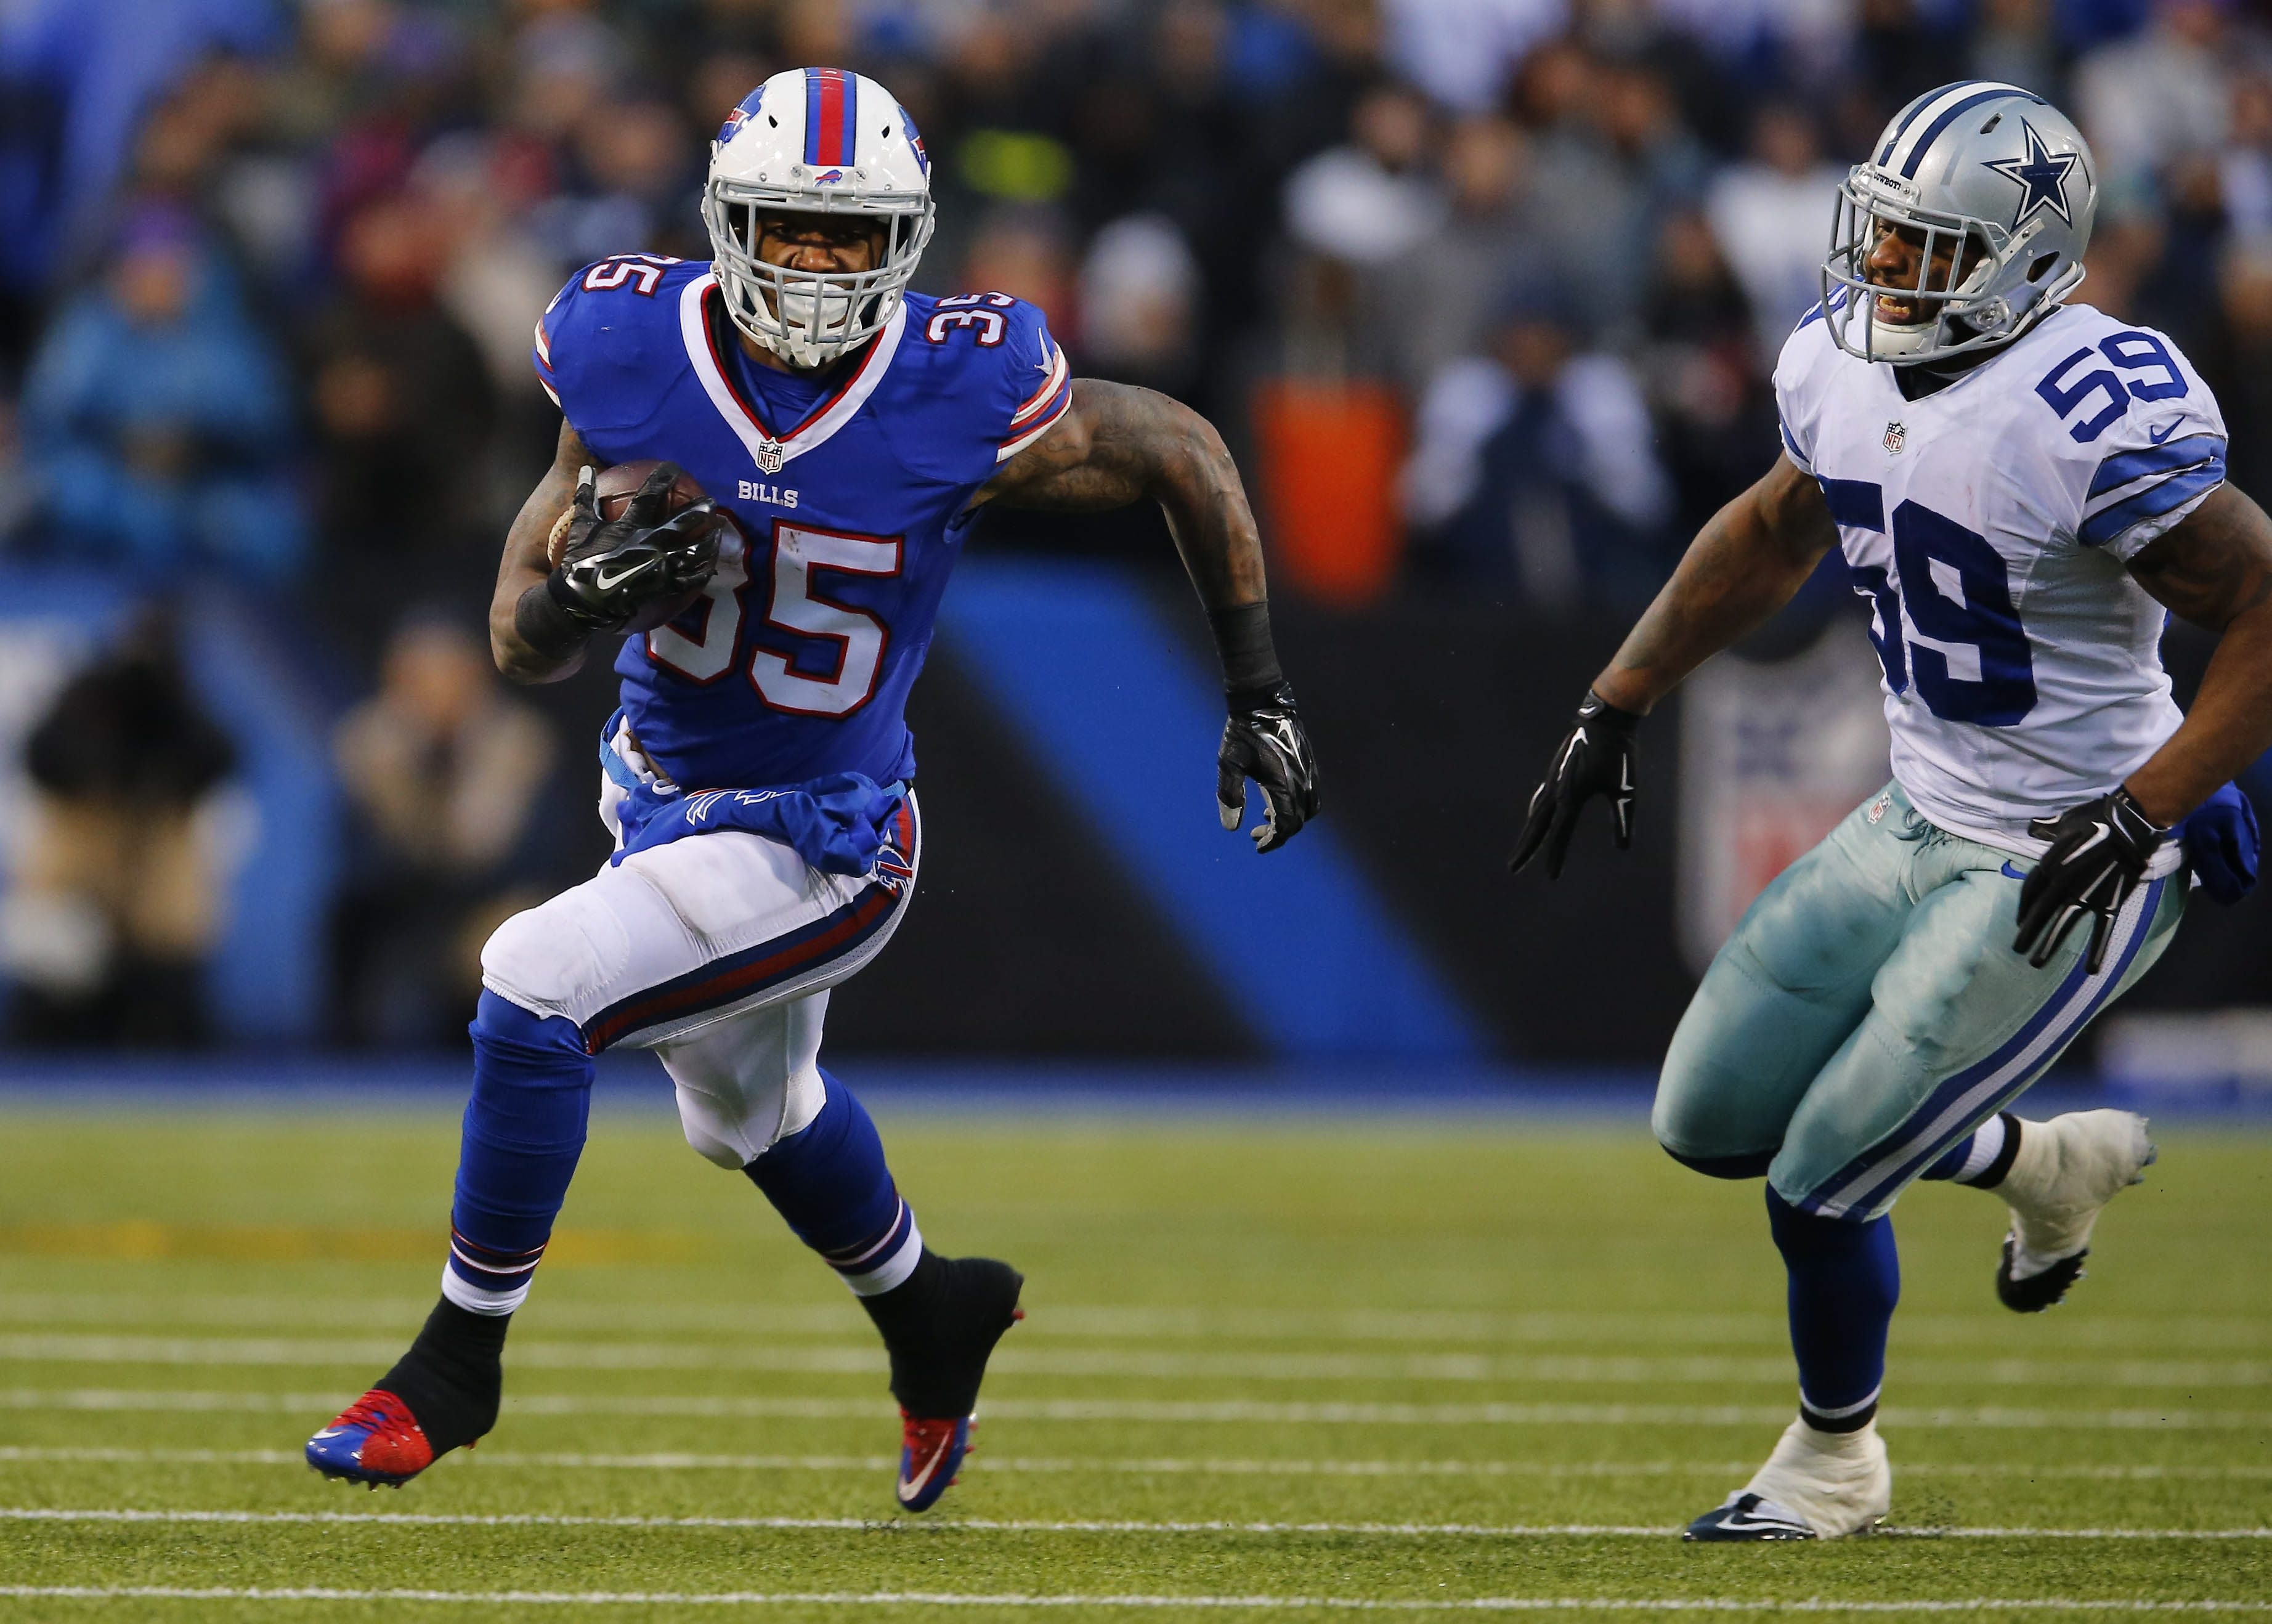 one lie ncut The Bills' Mike Gillislee beats the Cowboys' Anthony Hitchens to score in the fourth quarter of the game in Orchard Park Sunday, December 27, 2015.  ()